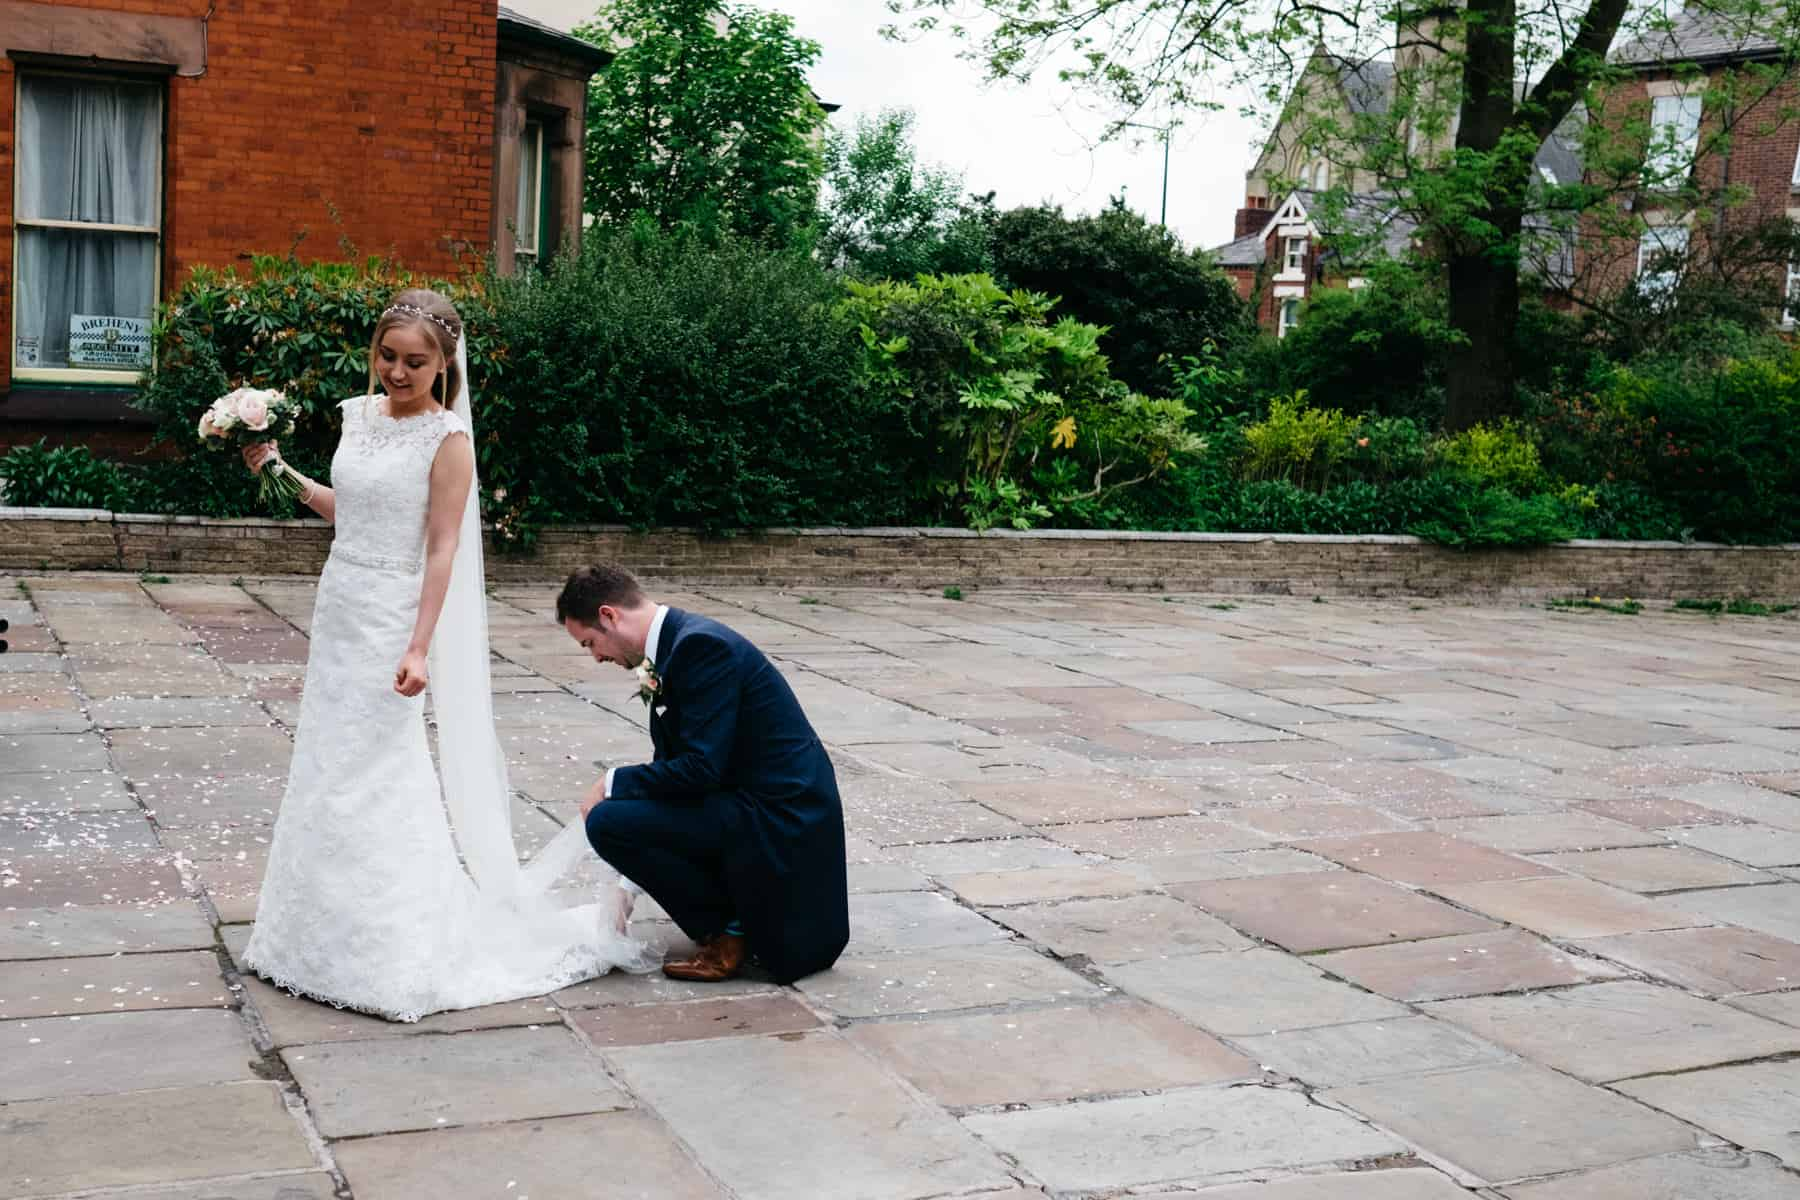 groom fixes bride's dress